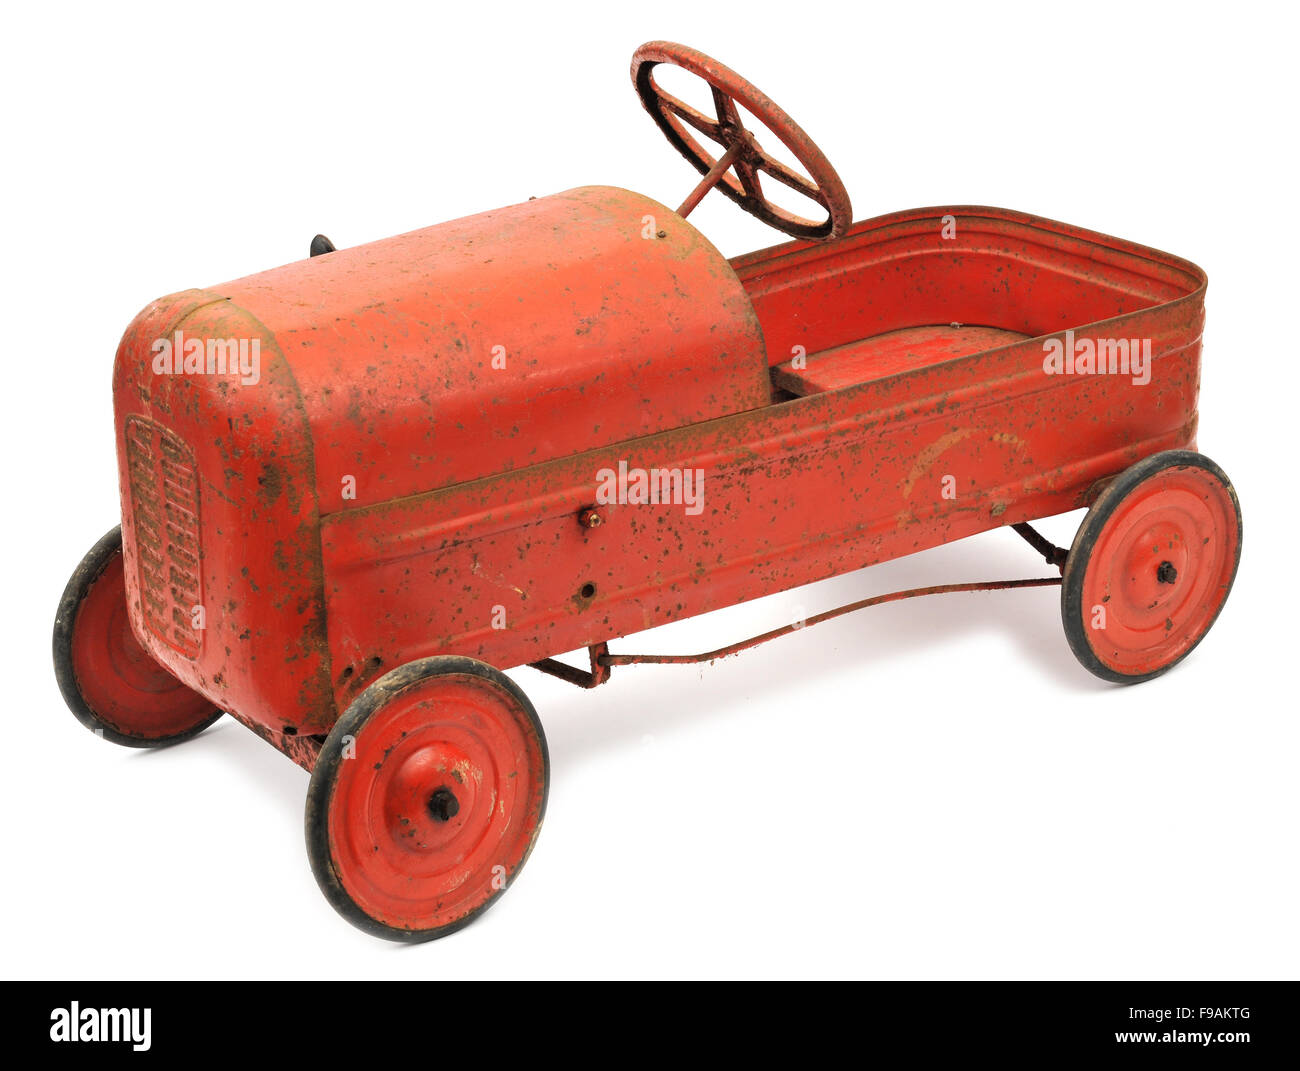 Children's 1940s Tri-ang tinplate pedal car toy - Stock Image